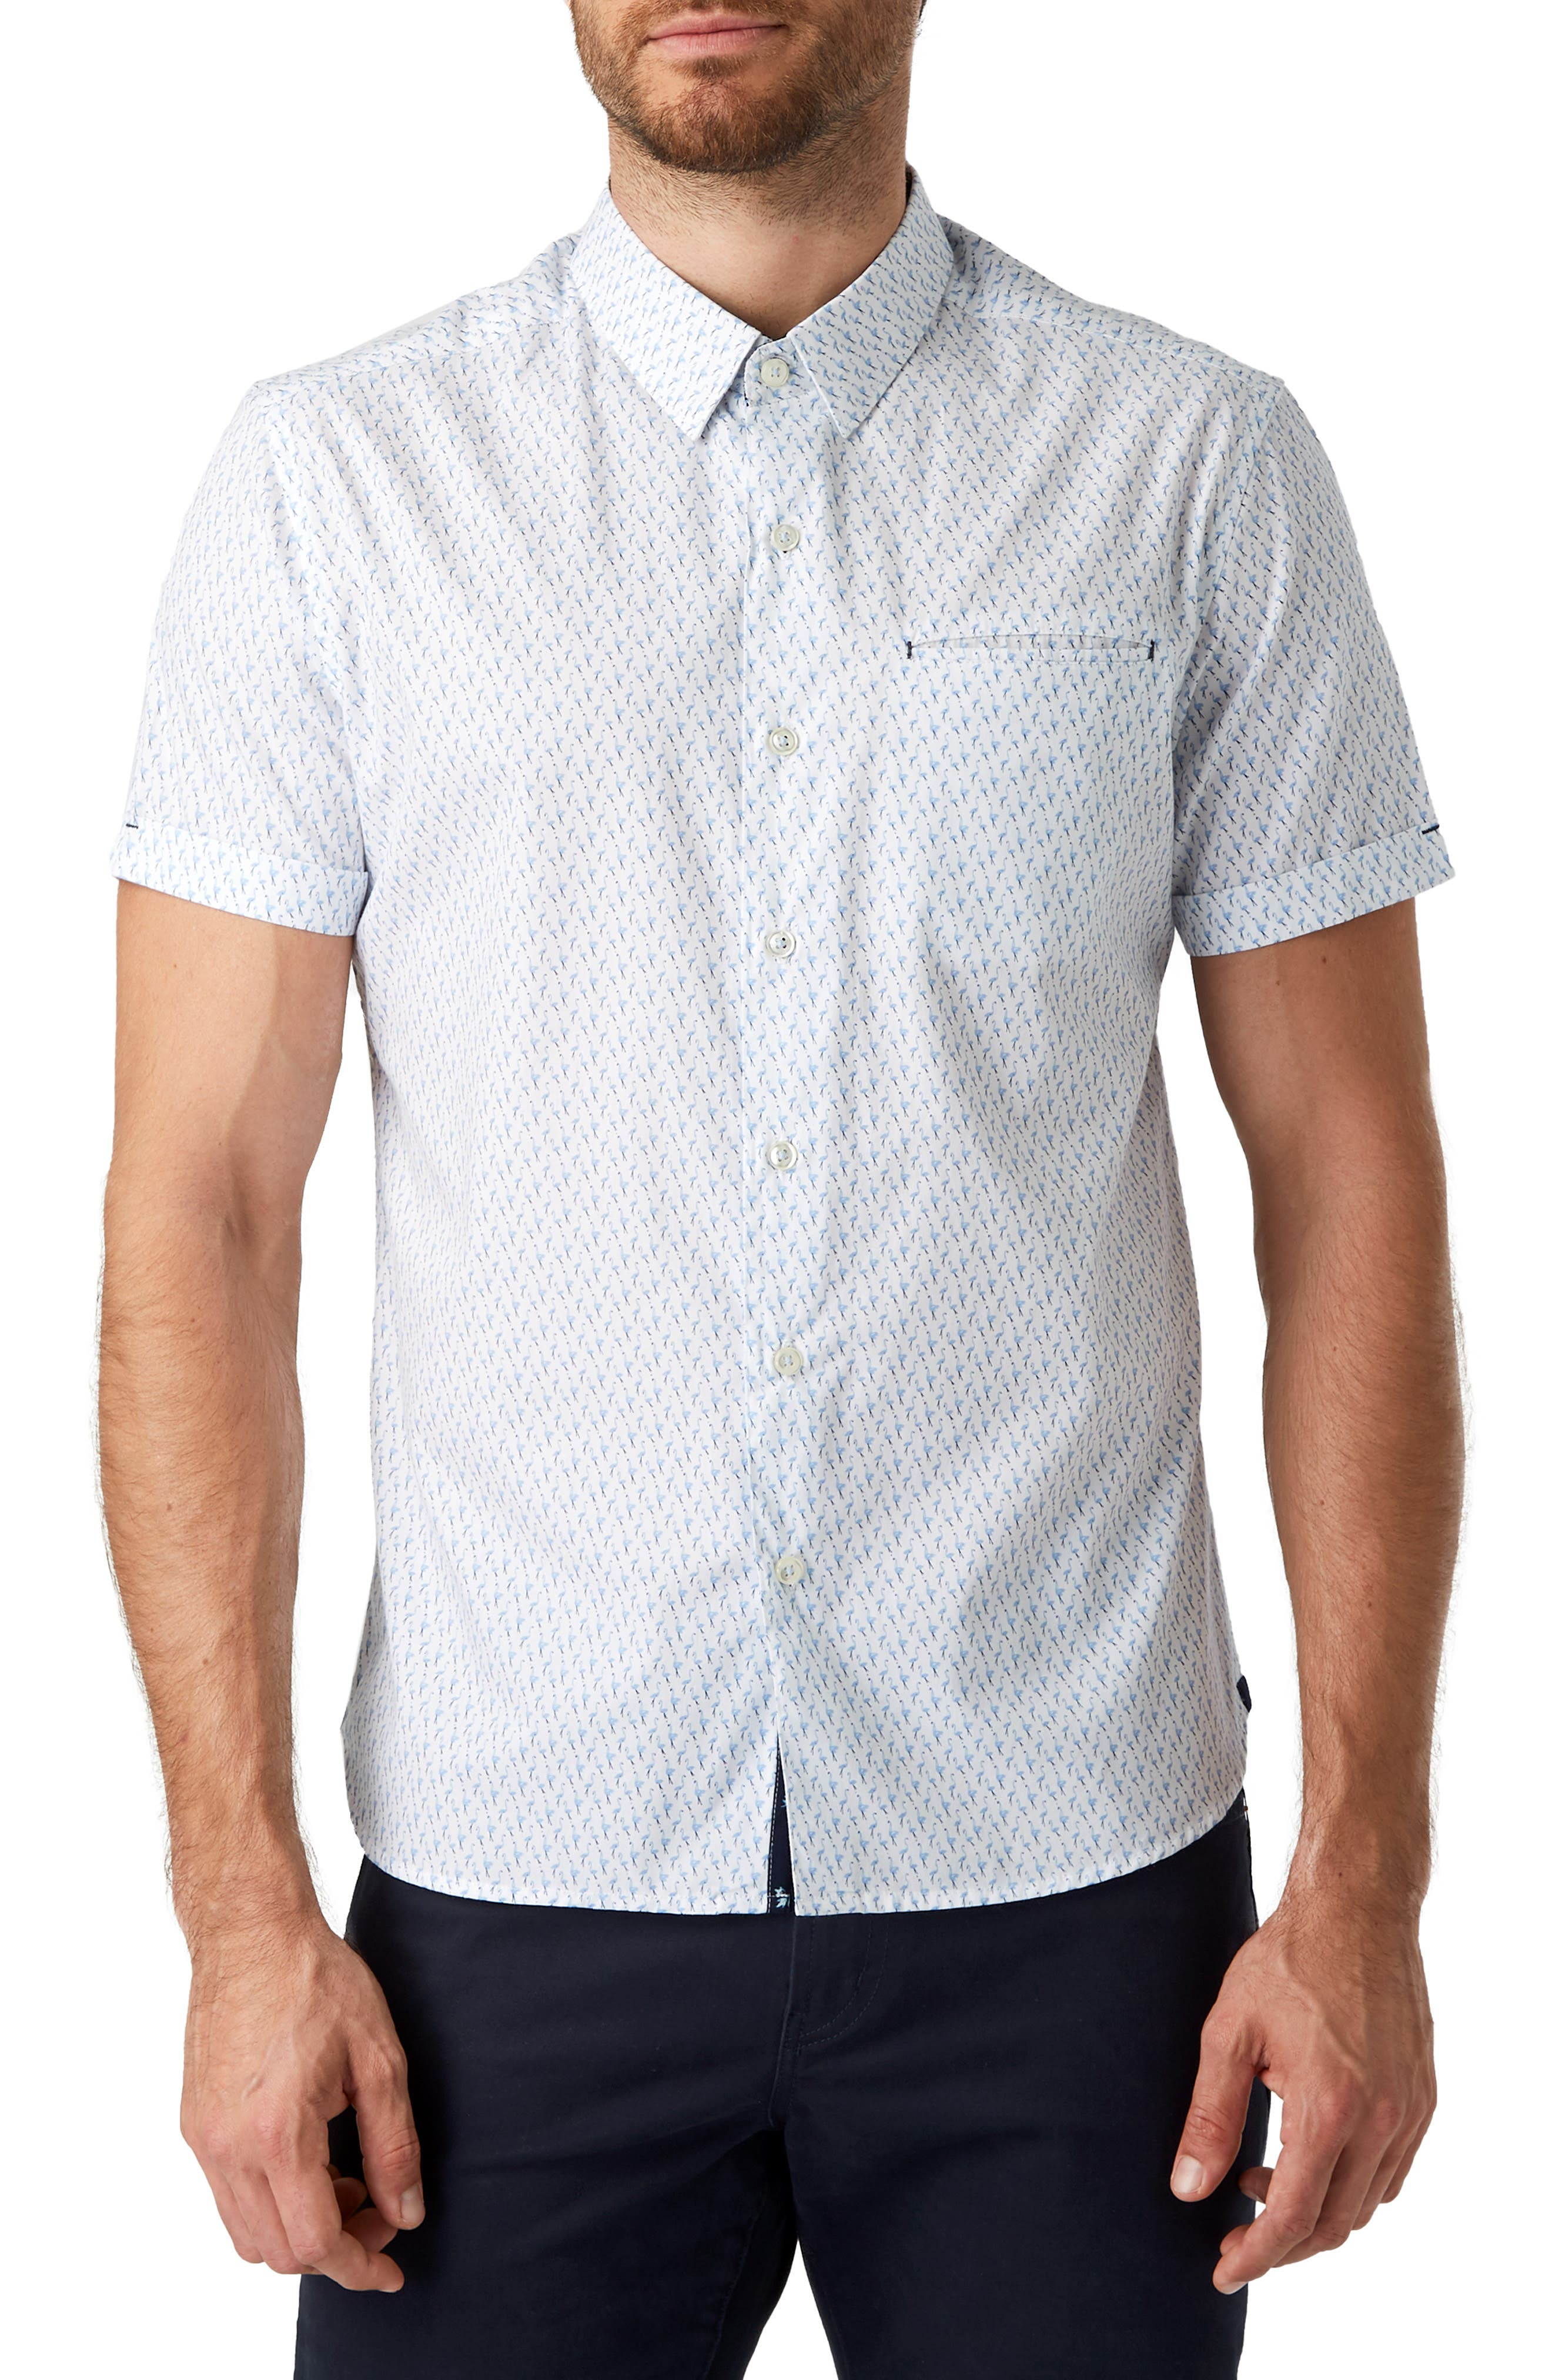 South Of Sunshine Slim Fit Sport Shirt by 7 Diamonds